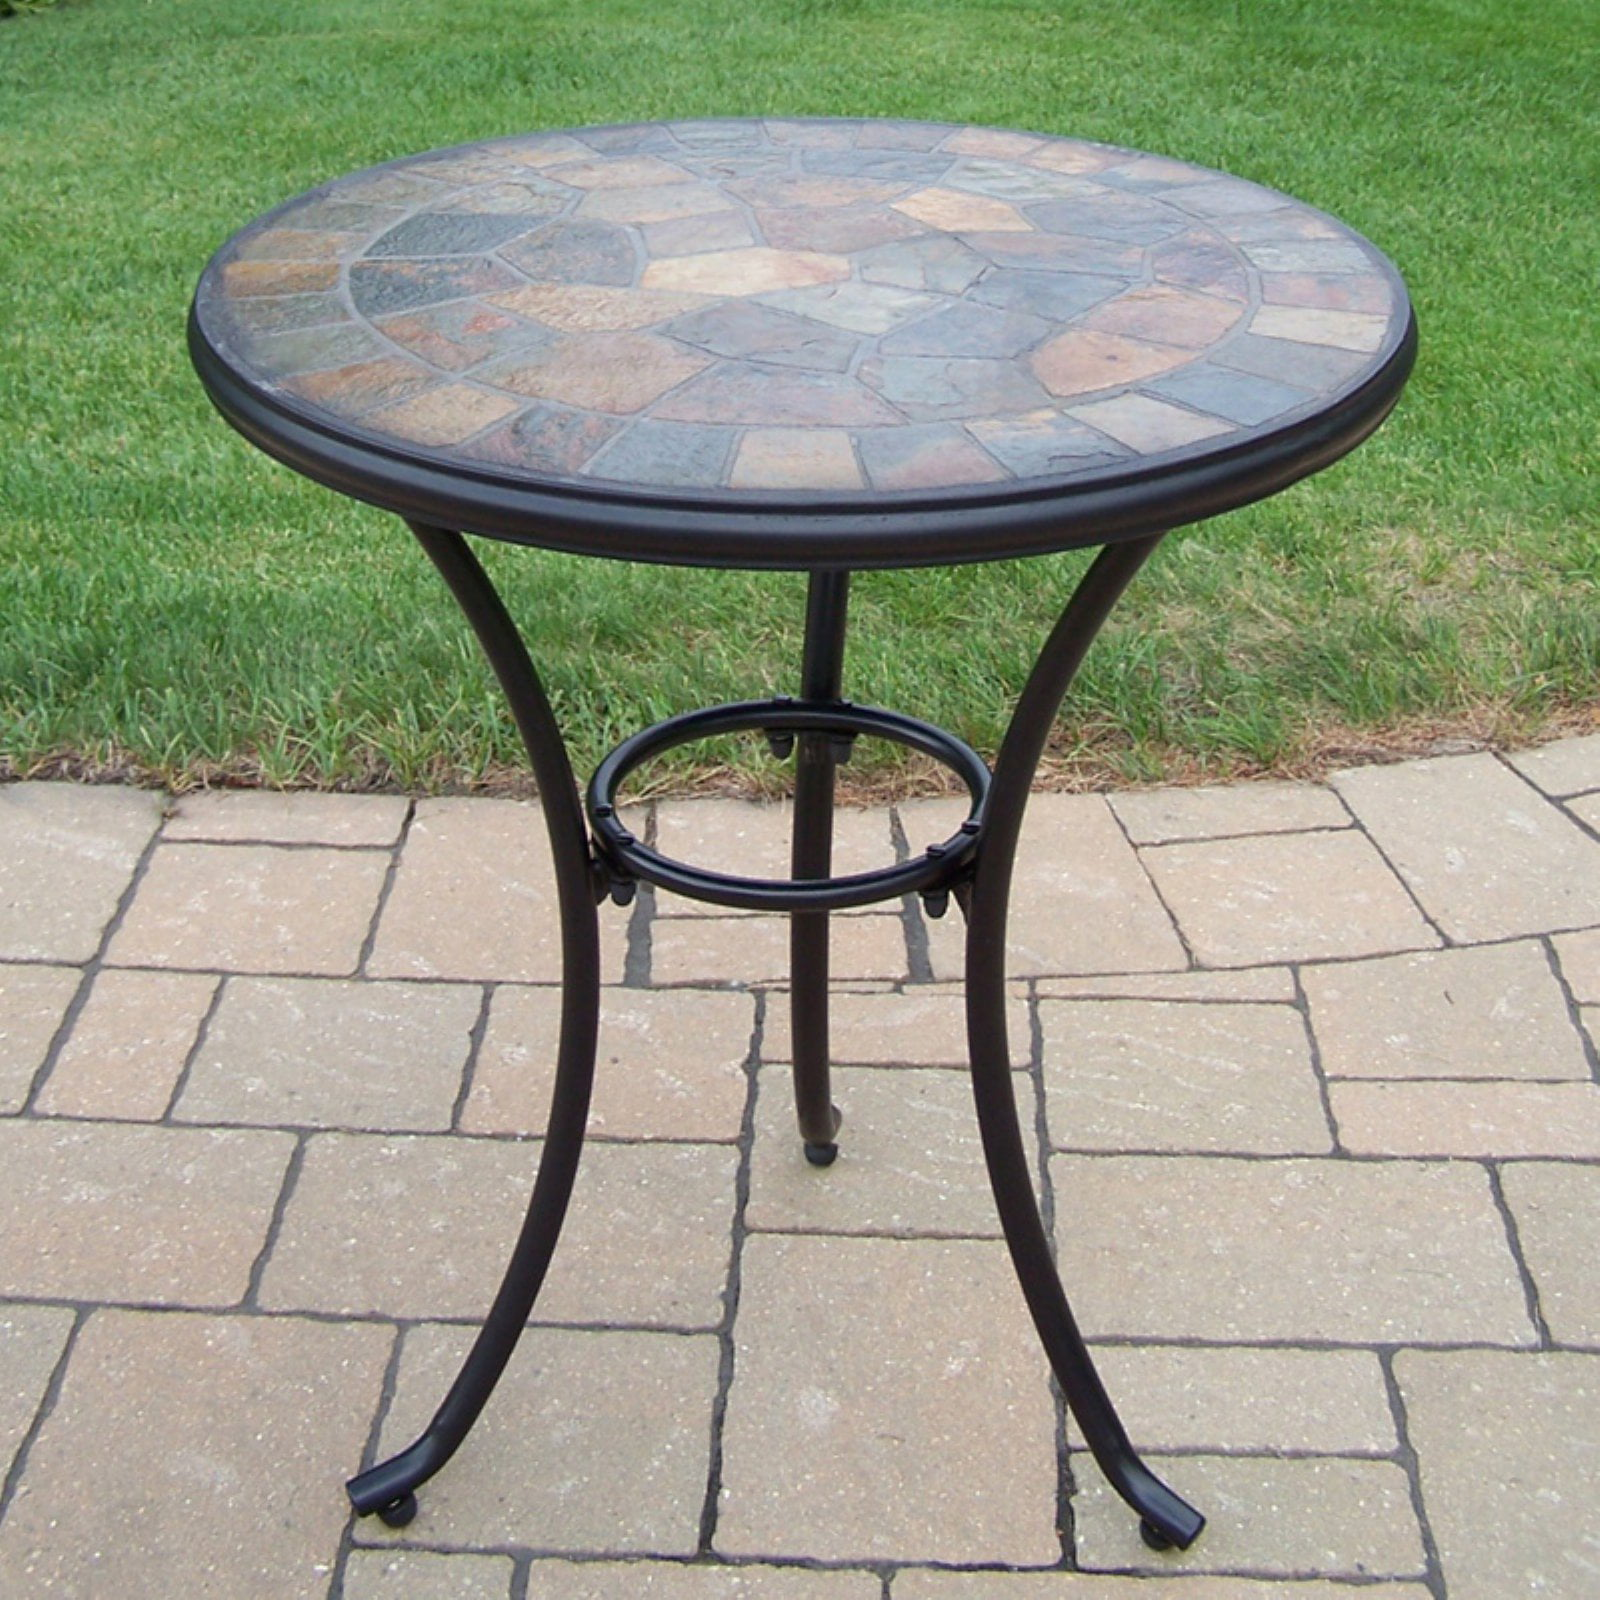 Oakland Living Stone Art 24 in Patio Bistro Table Walmart